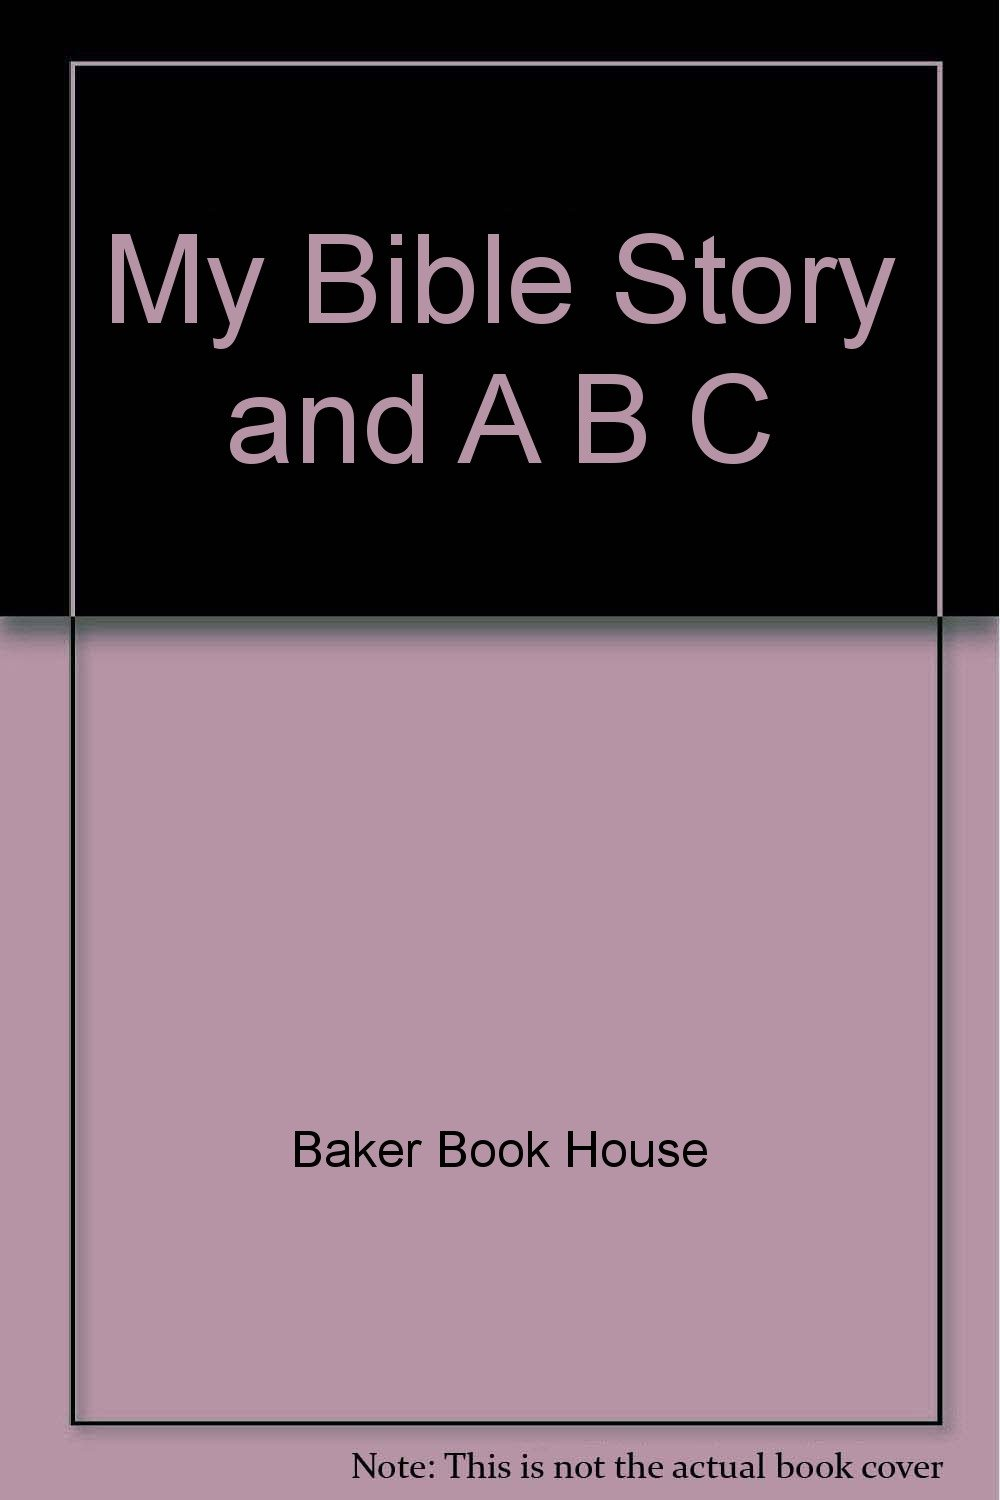 My Bible Story and ABC's pdf